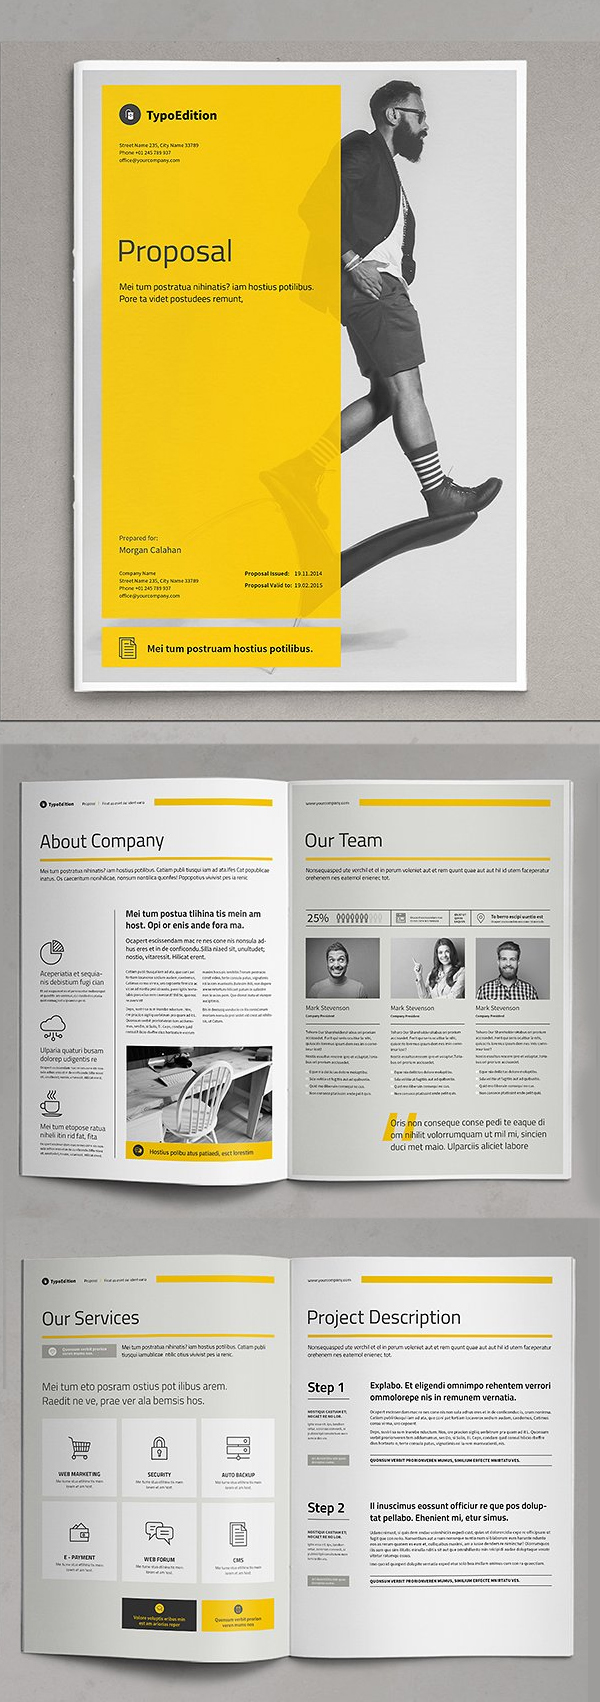 Business Proposal Templates Design Graphic Design Junction